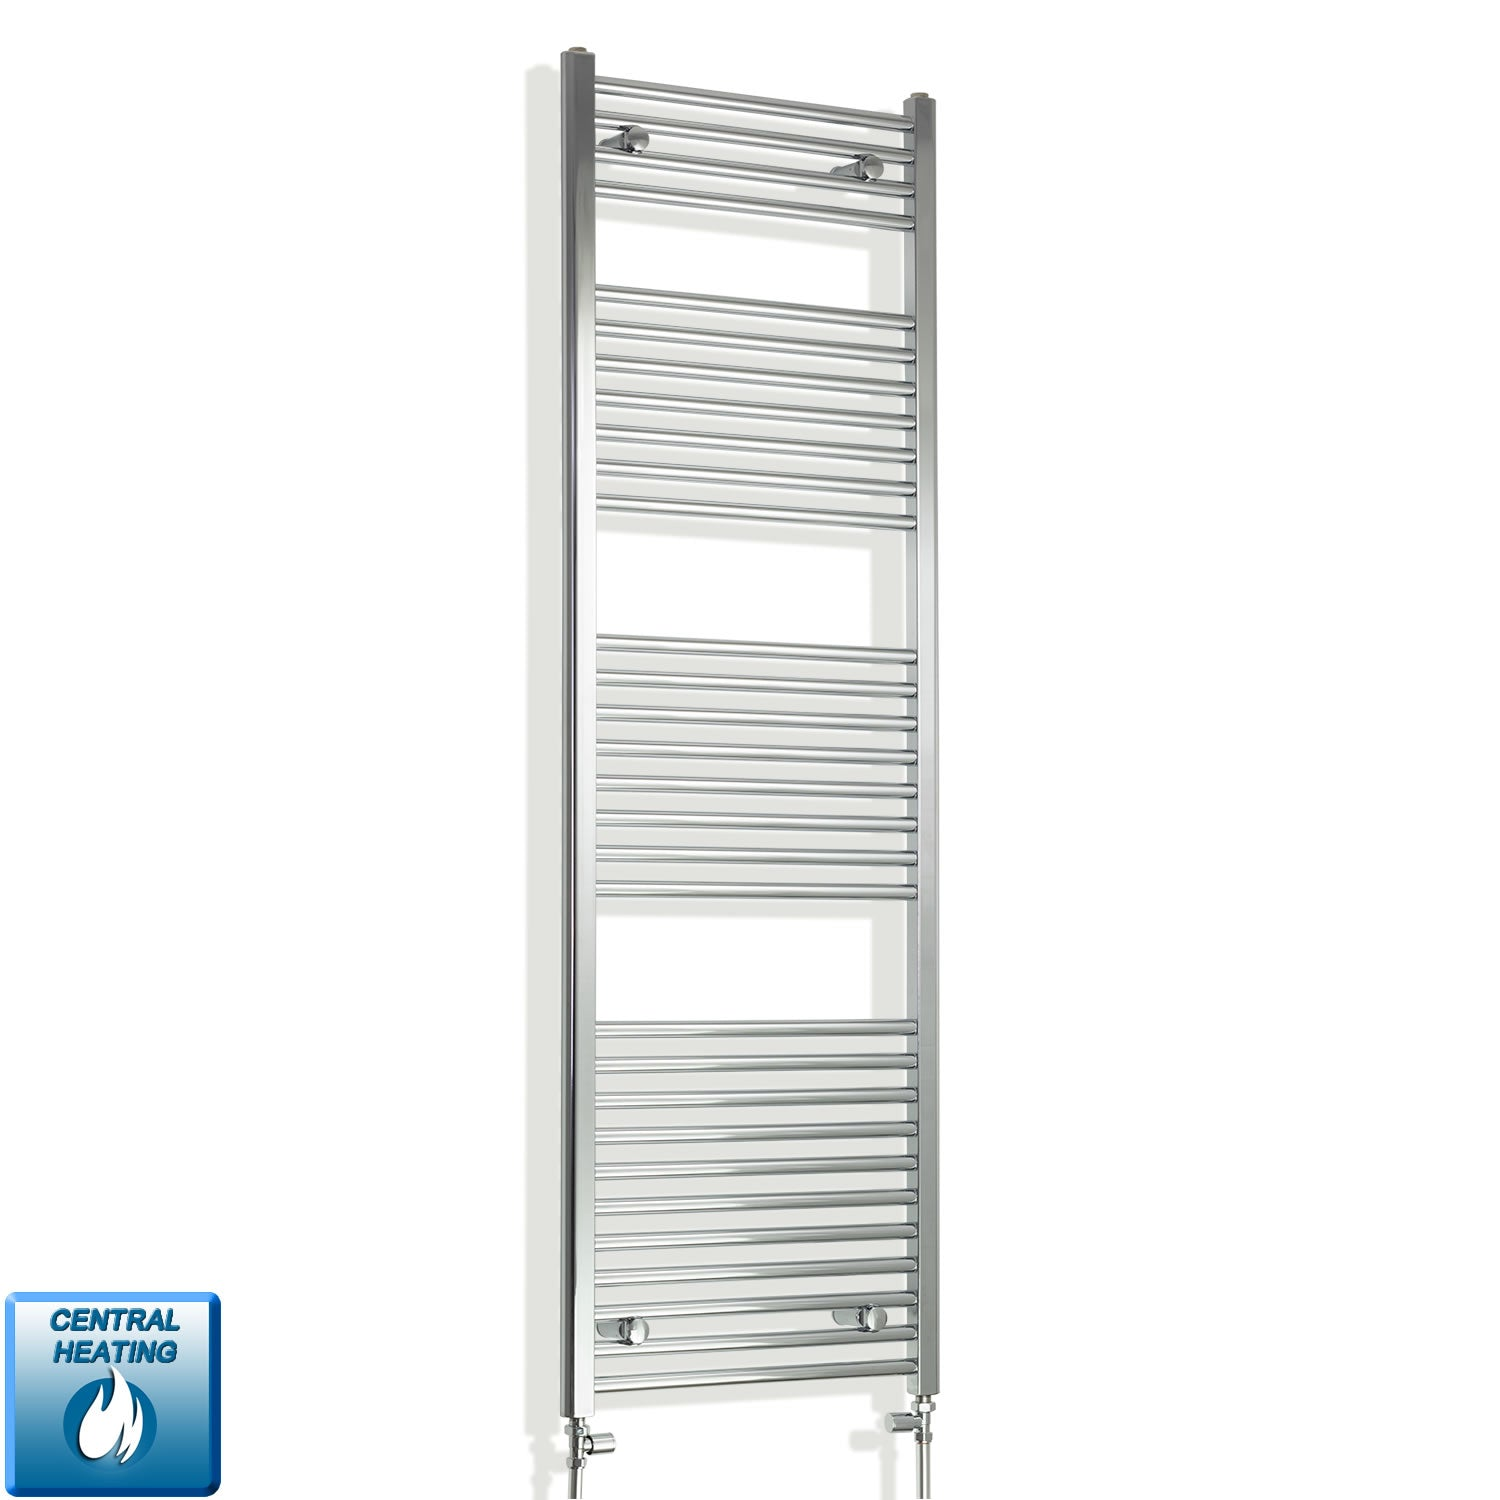 1700 mm High x 450 mm Wide Heated Straight Towel Rail Radiator Chrome